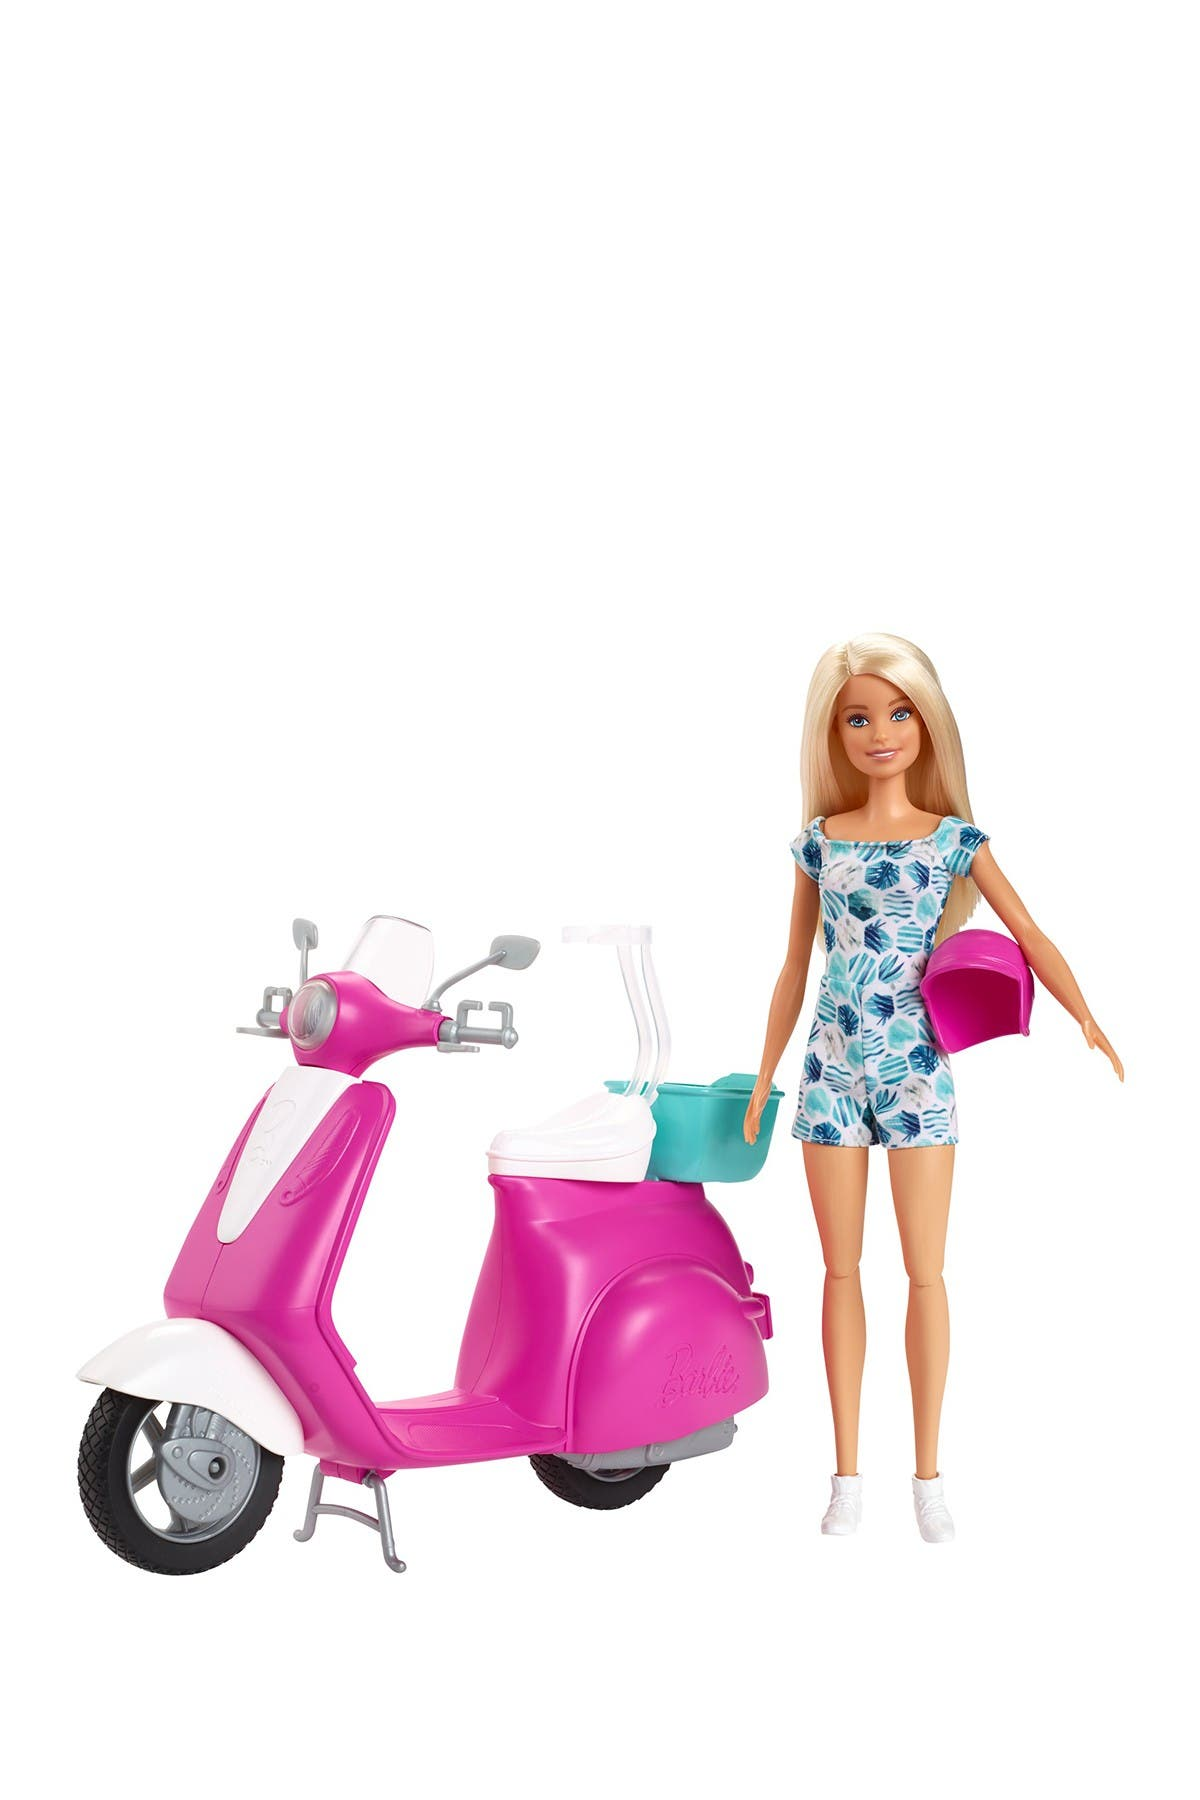 Image of Mattel Barbie Doll and Scooter